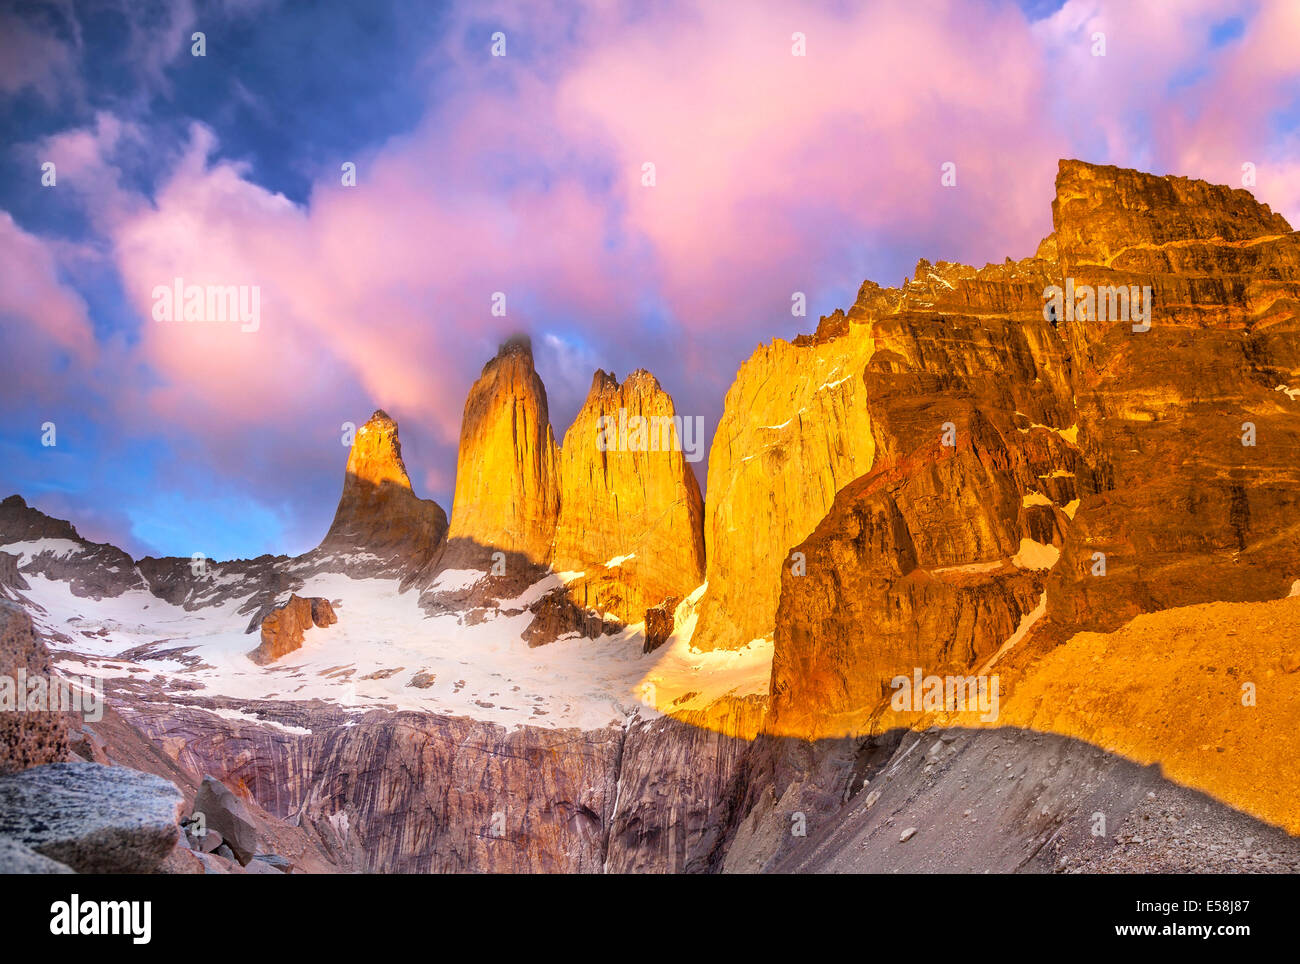 Beau lever de soleil dans le parc national Torres del Paine, Patagonie, Chili Photo Stock